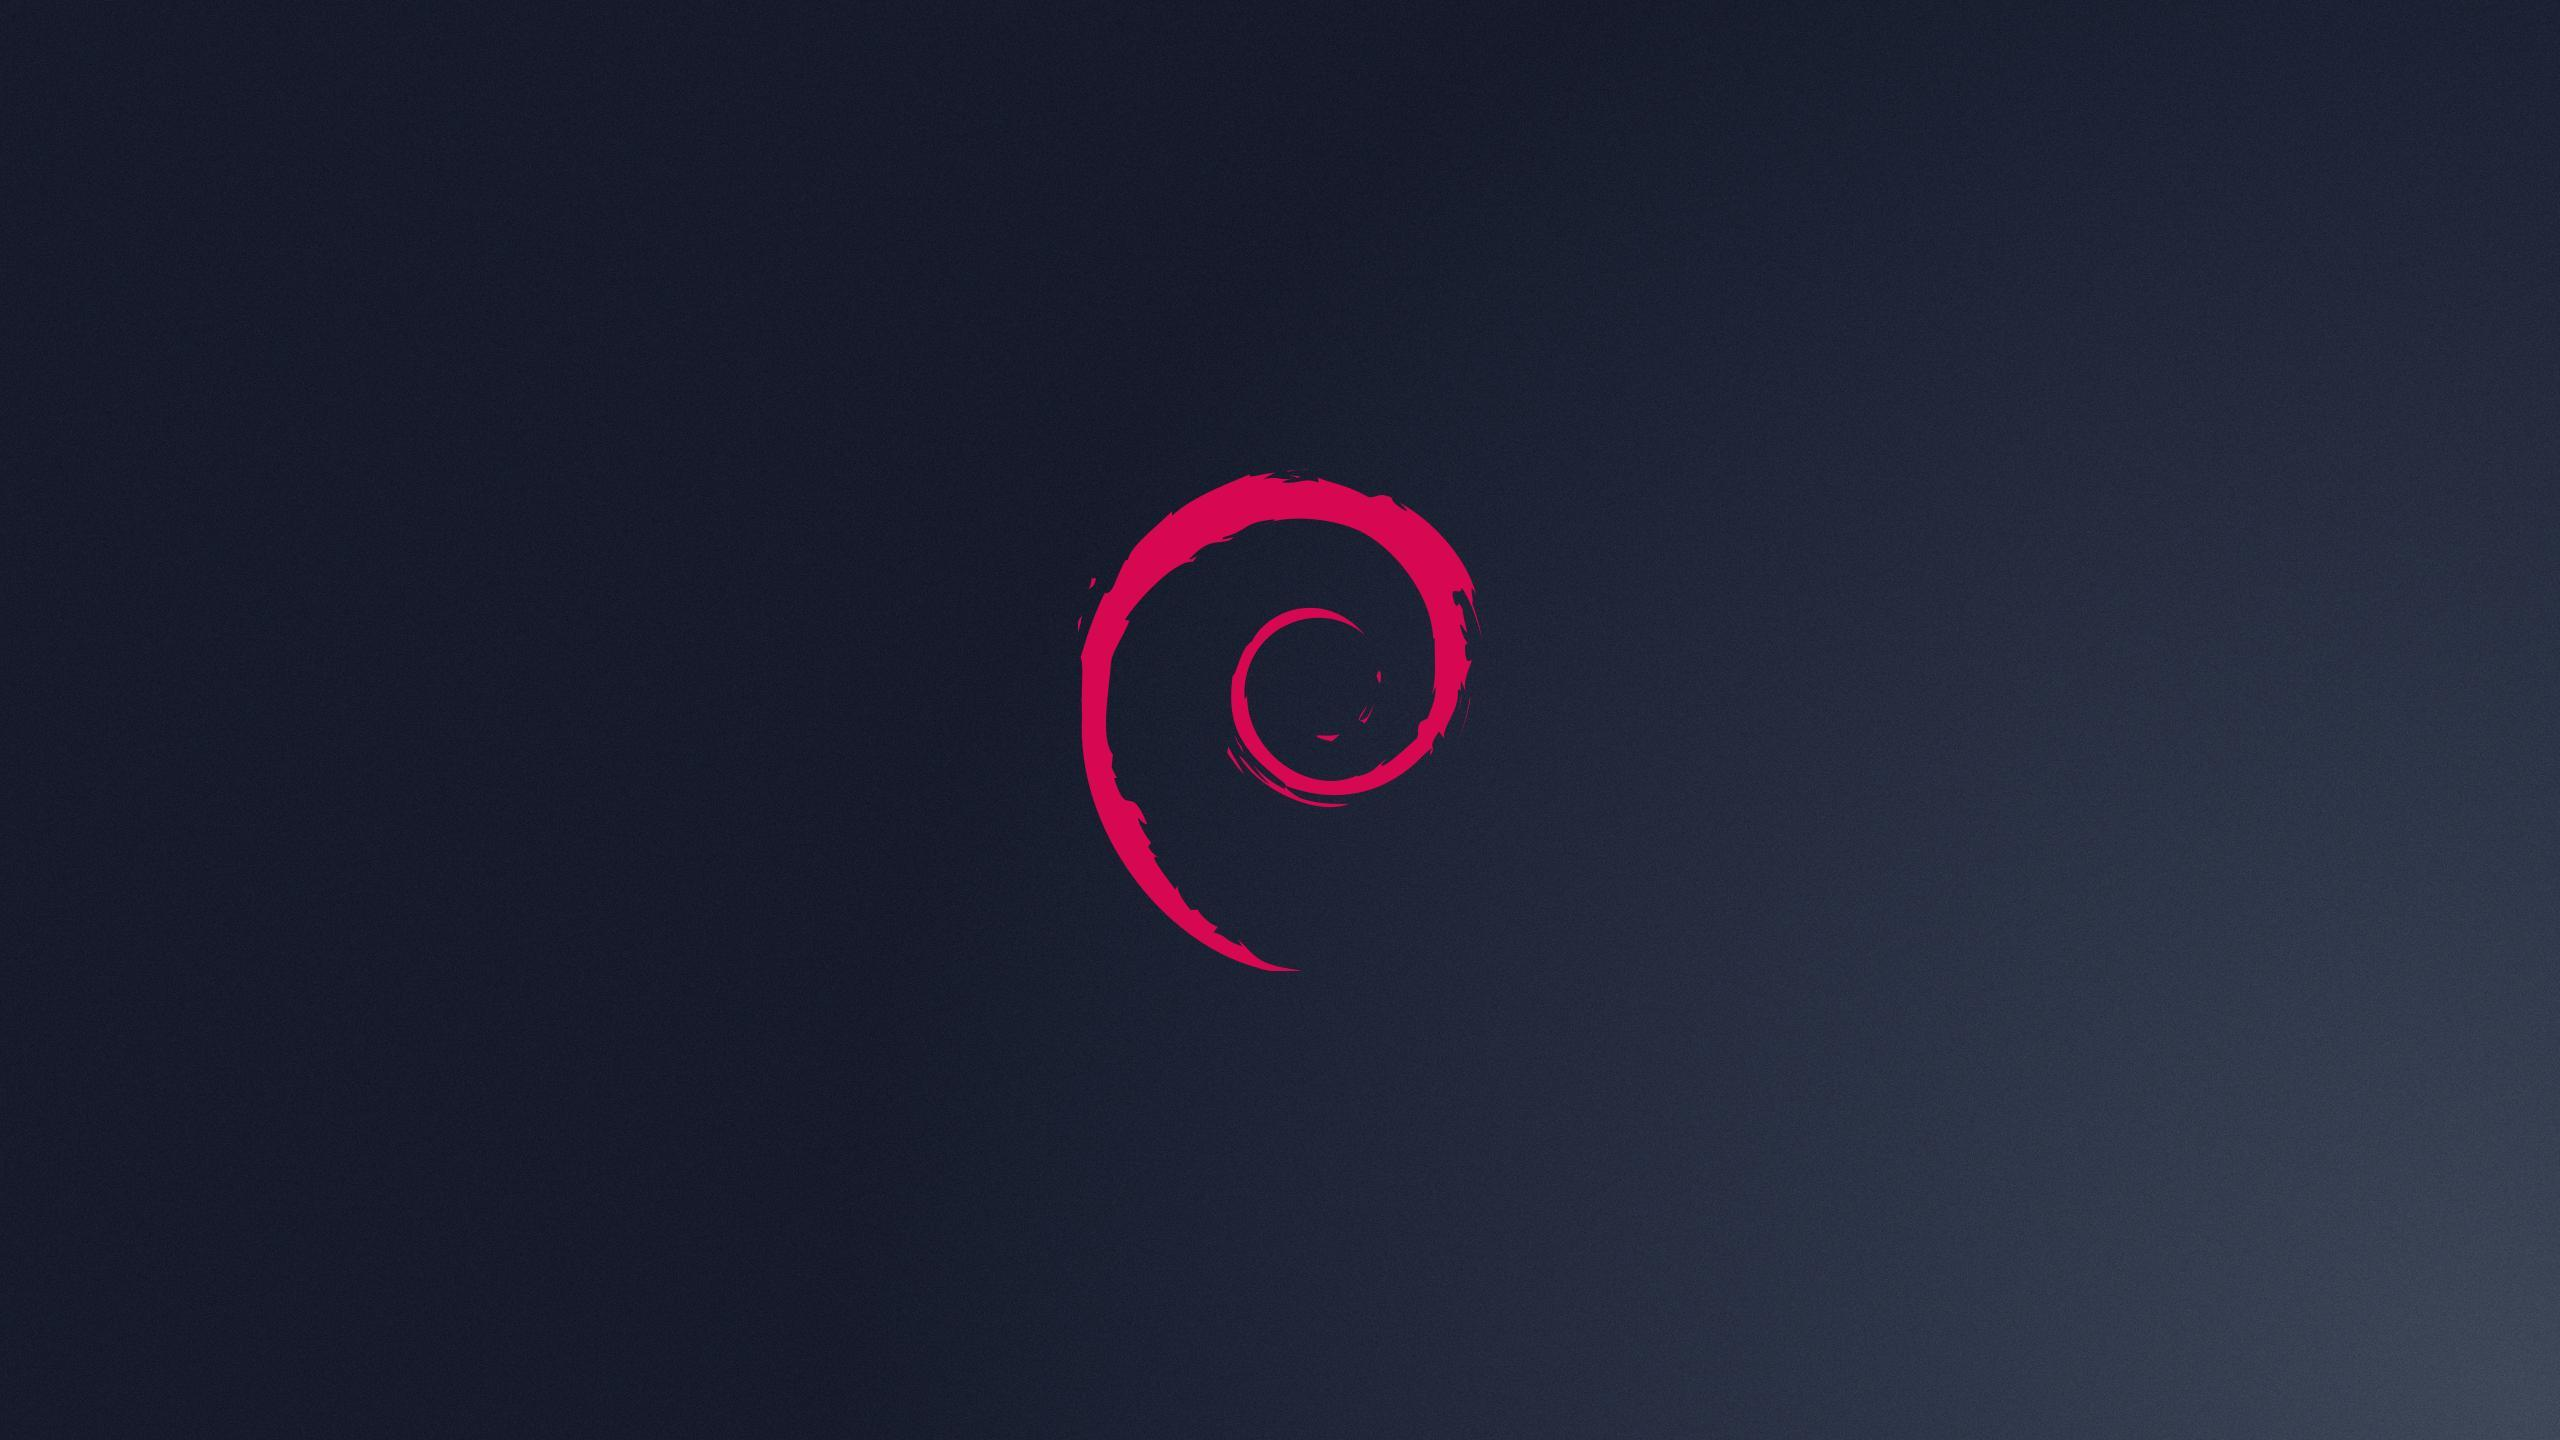 55 Debian Linux Wallpapers   Download at WallpaperBro 2560x1440